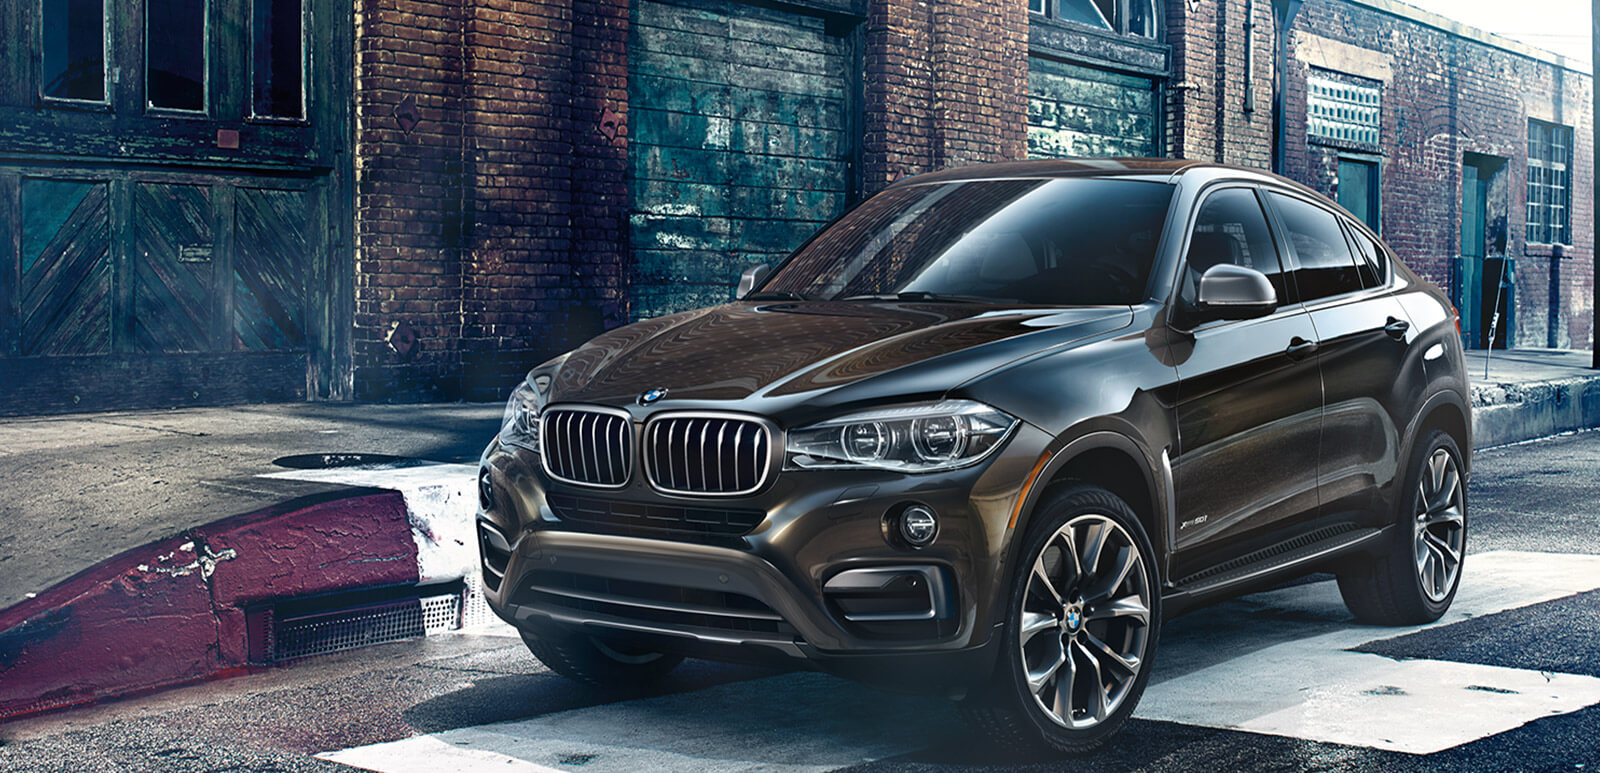 new bmw x6 lease offers calabasas california. Black Bedroom Furniture Sets. Home Design Ideas